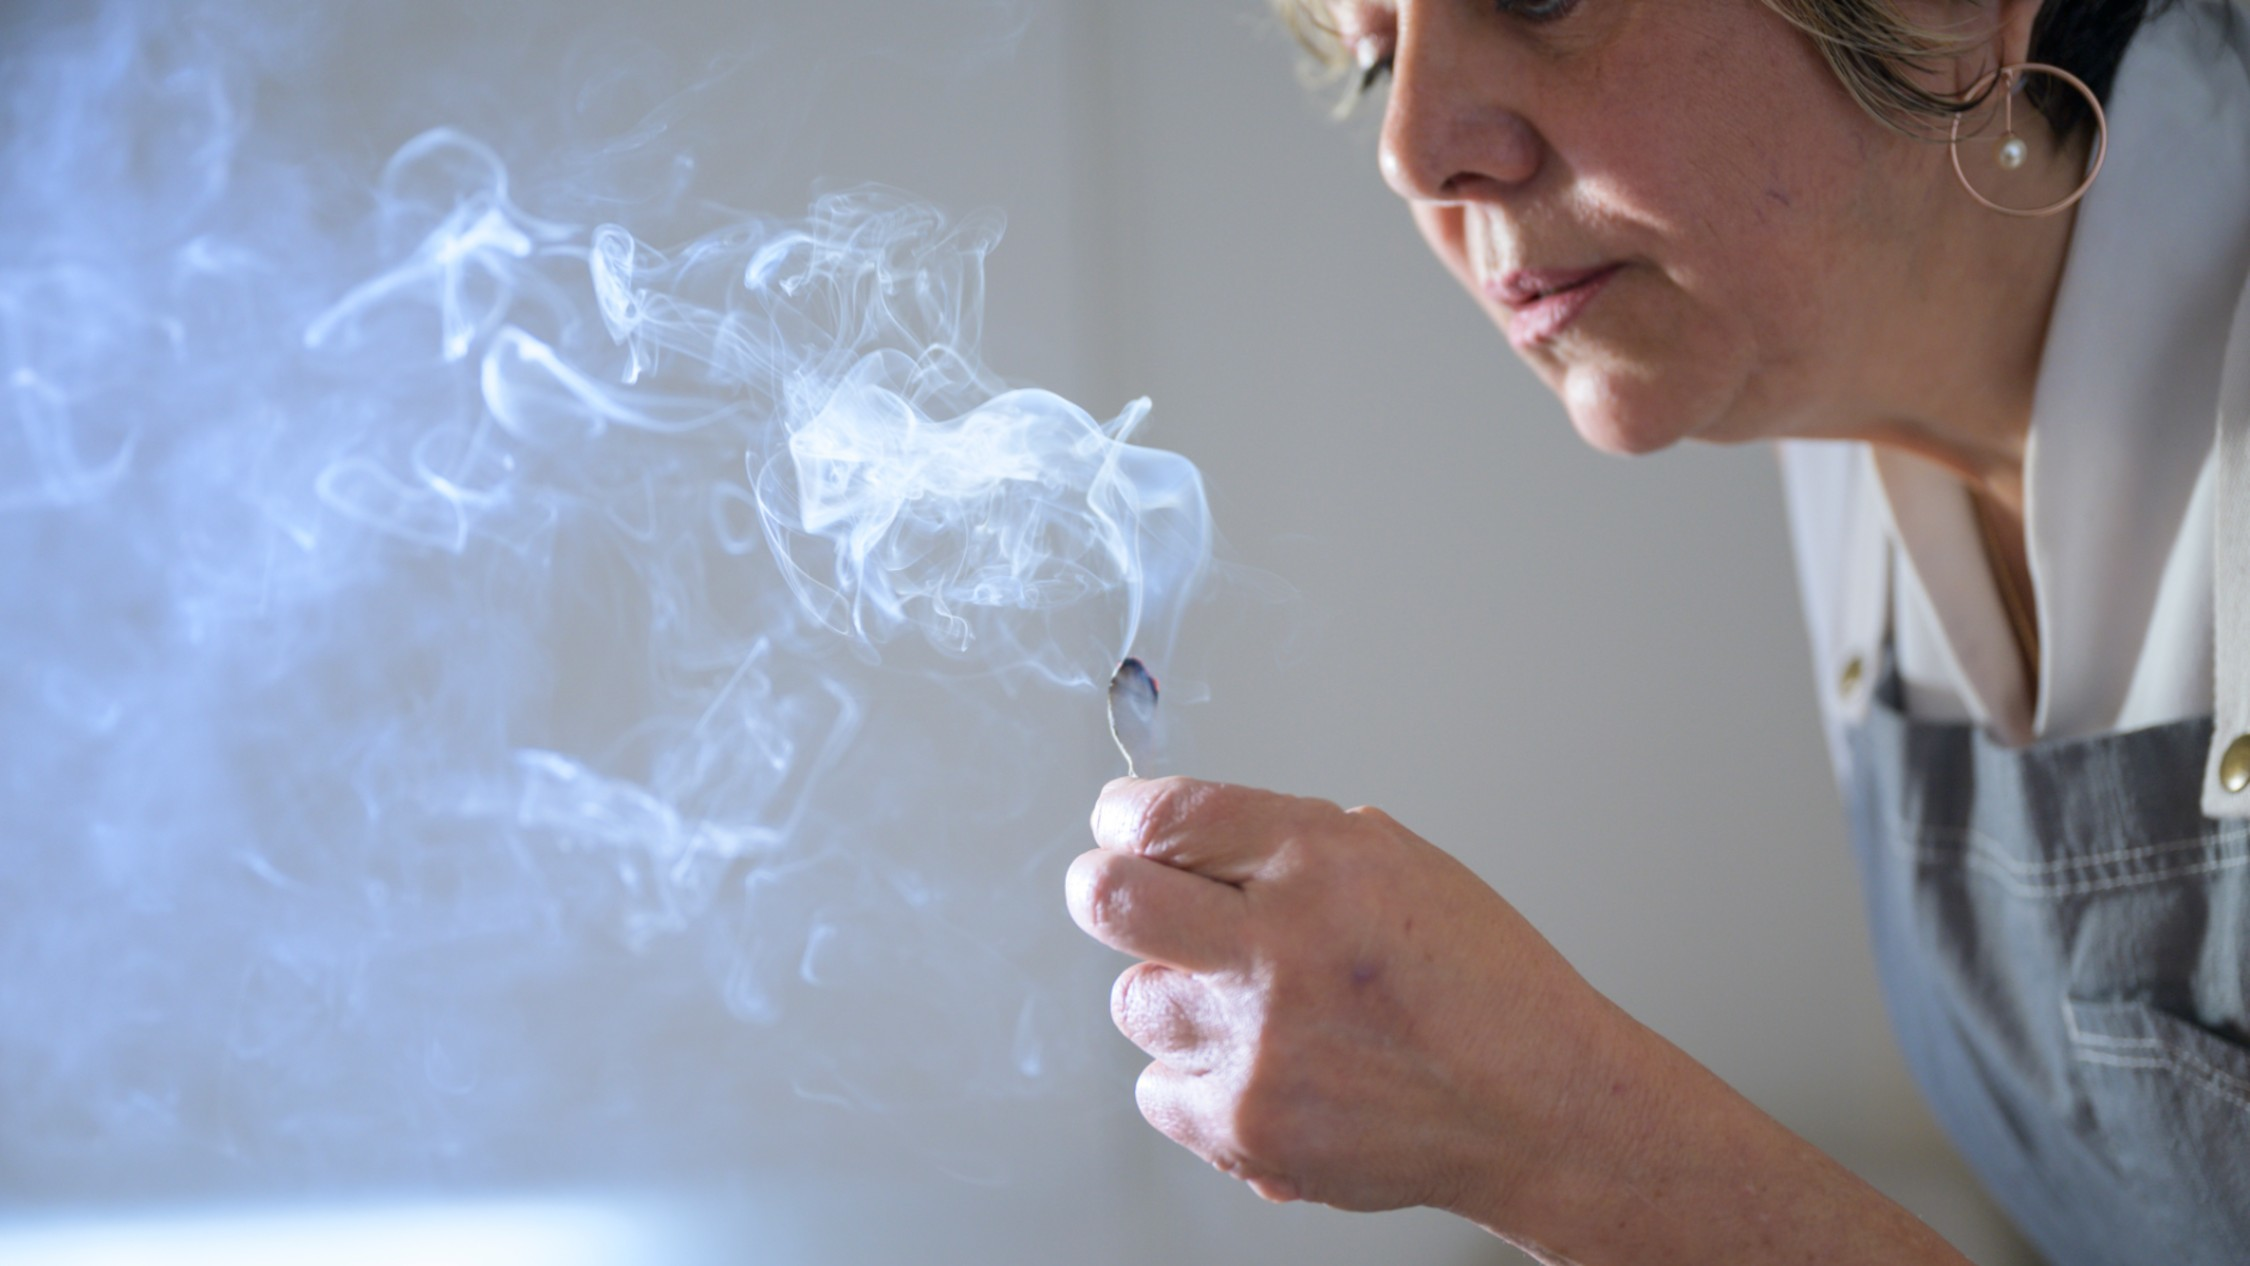 A beauty therapist gently blows on a smoking piece of sage or similar herb.